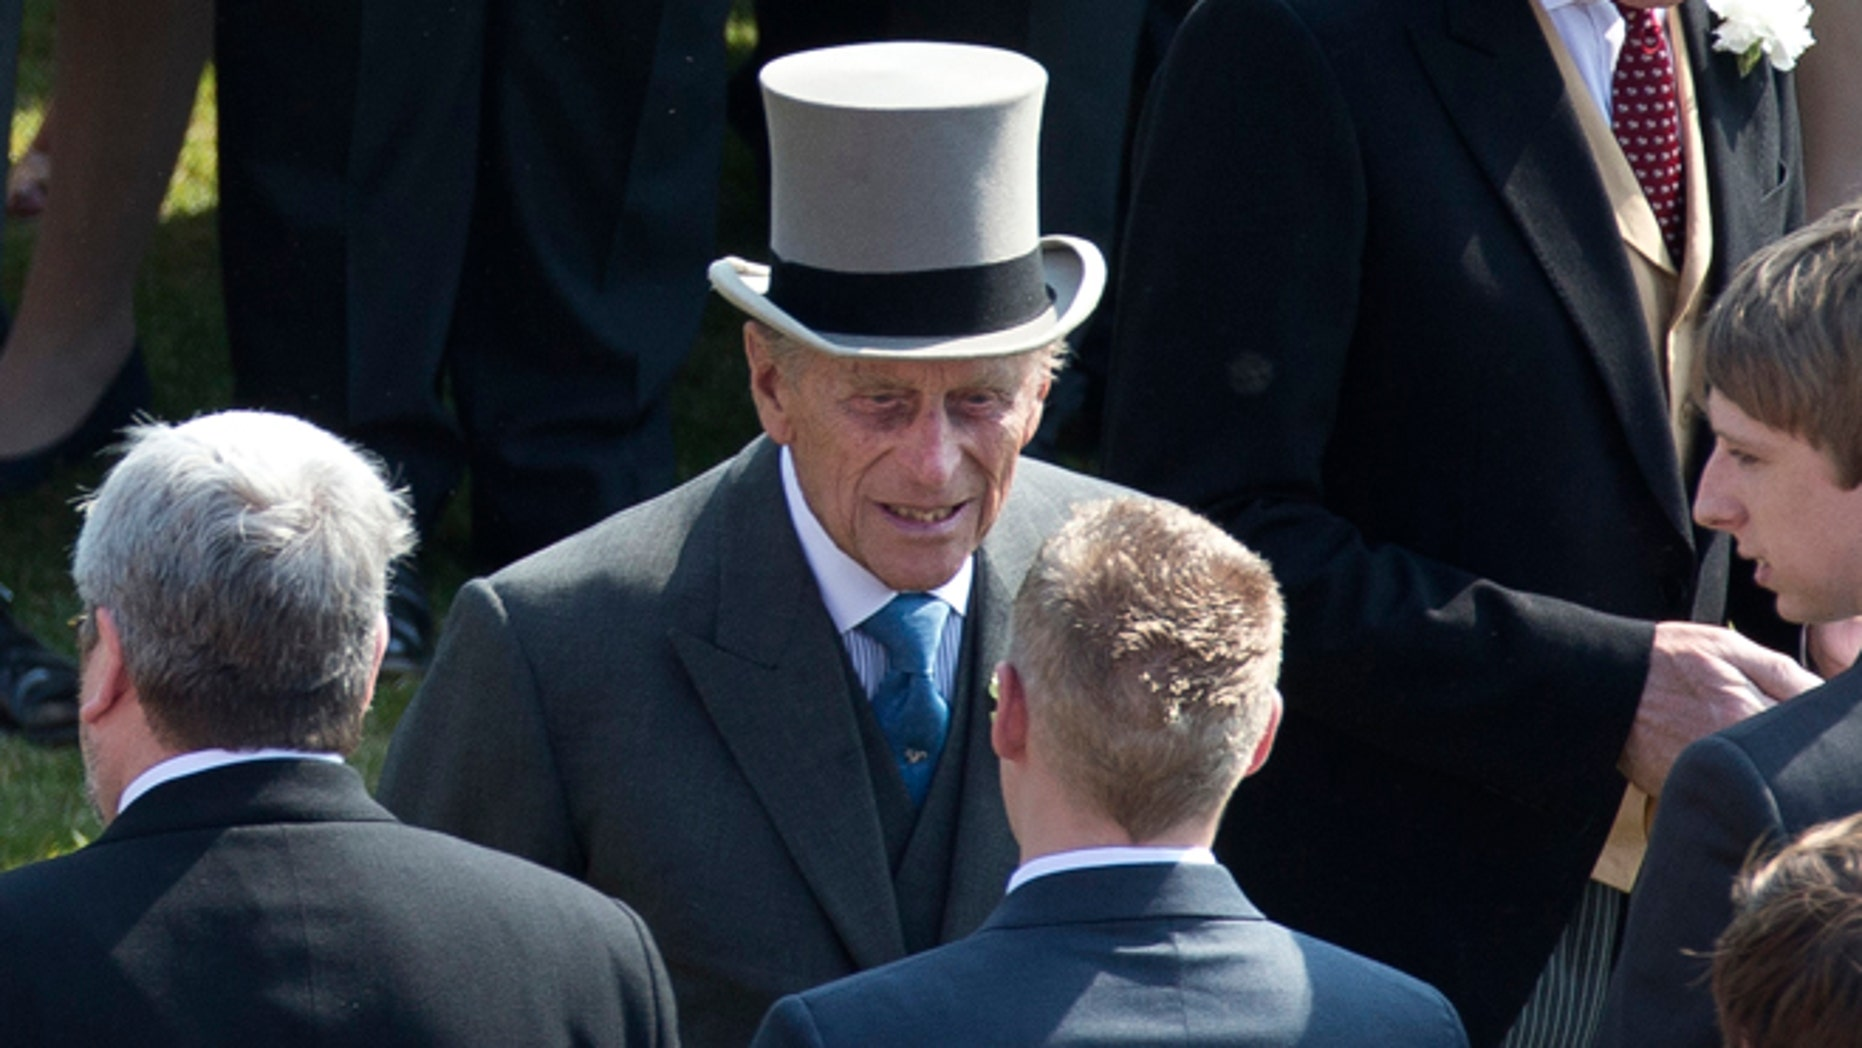 """June 6, 2013: Prince Philip, center, the husband of Britain's Queen Elizabeth II attends a garden party at Buckingham Palace in London.  Buckingham Palace says Queen Elizabeth II's husband was later admitted to a London hospital for an exploratory operation. The palace said the operation on 91-year-old Prince Philip will come after """"abdominal investigations,"""" but did not elaborate.  ("""